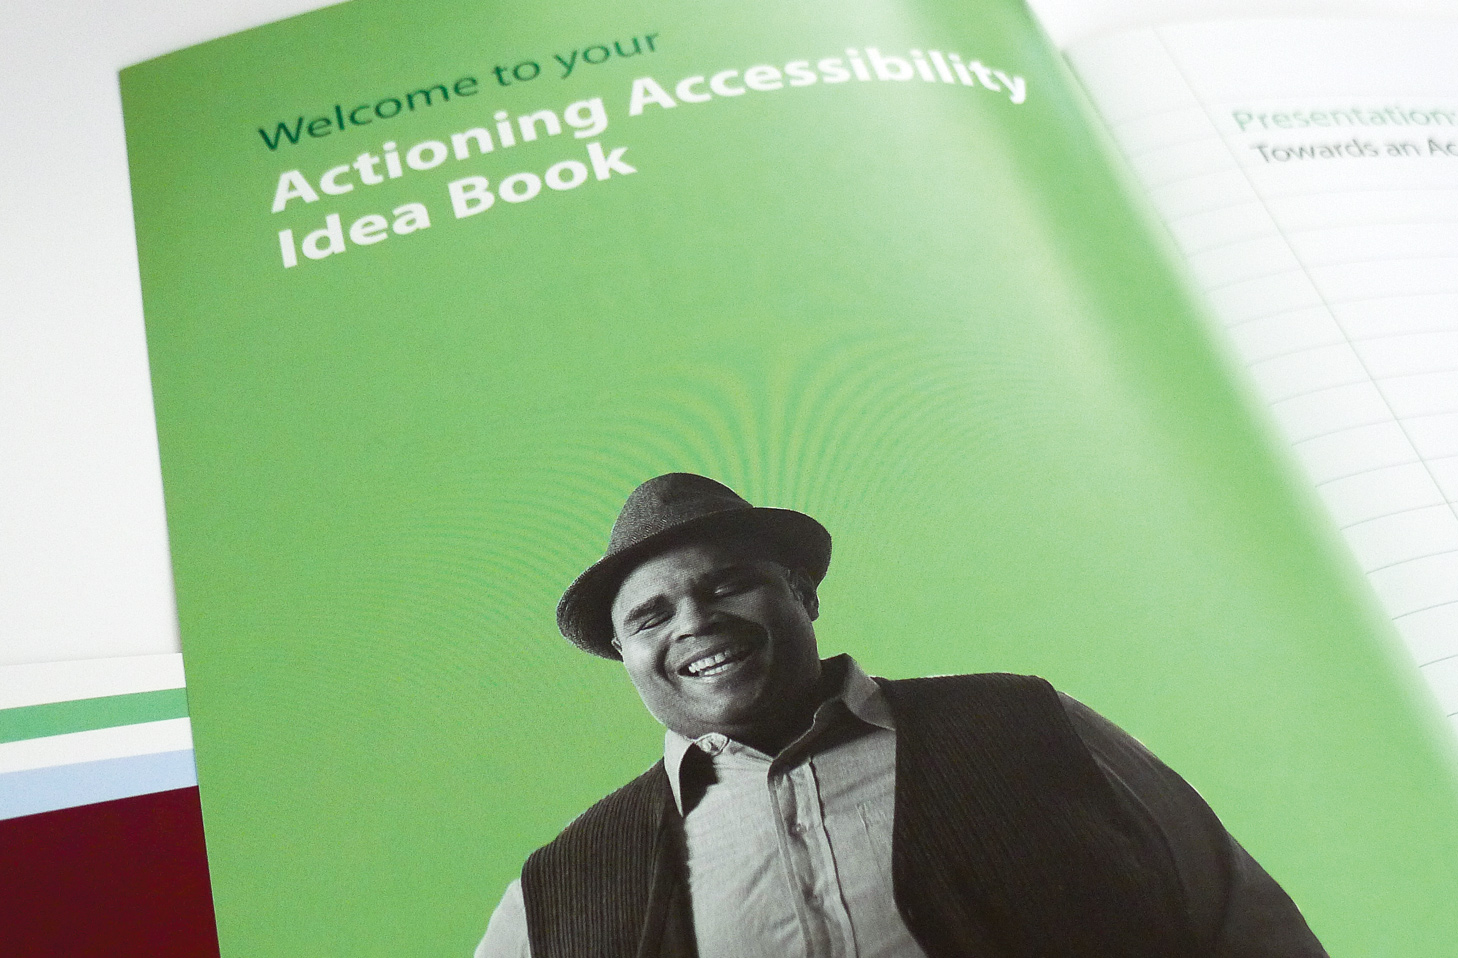 Actioning accessibility idea book.